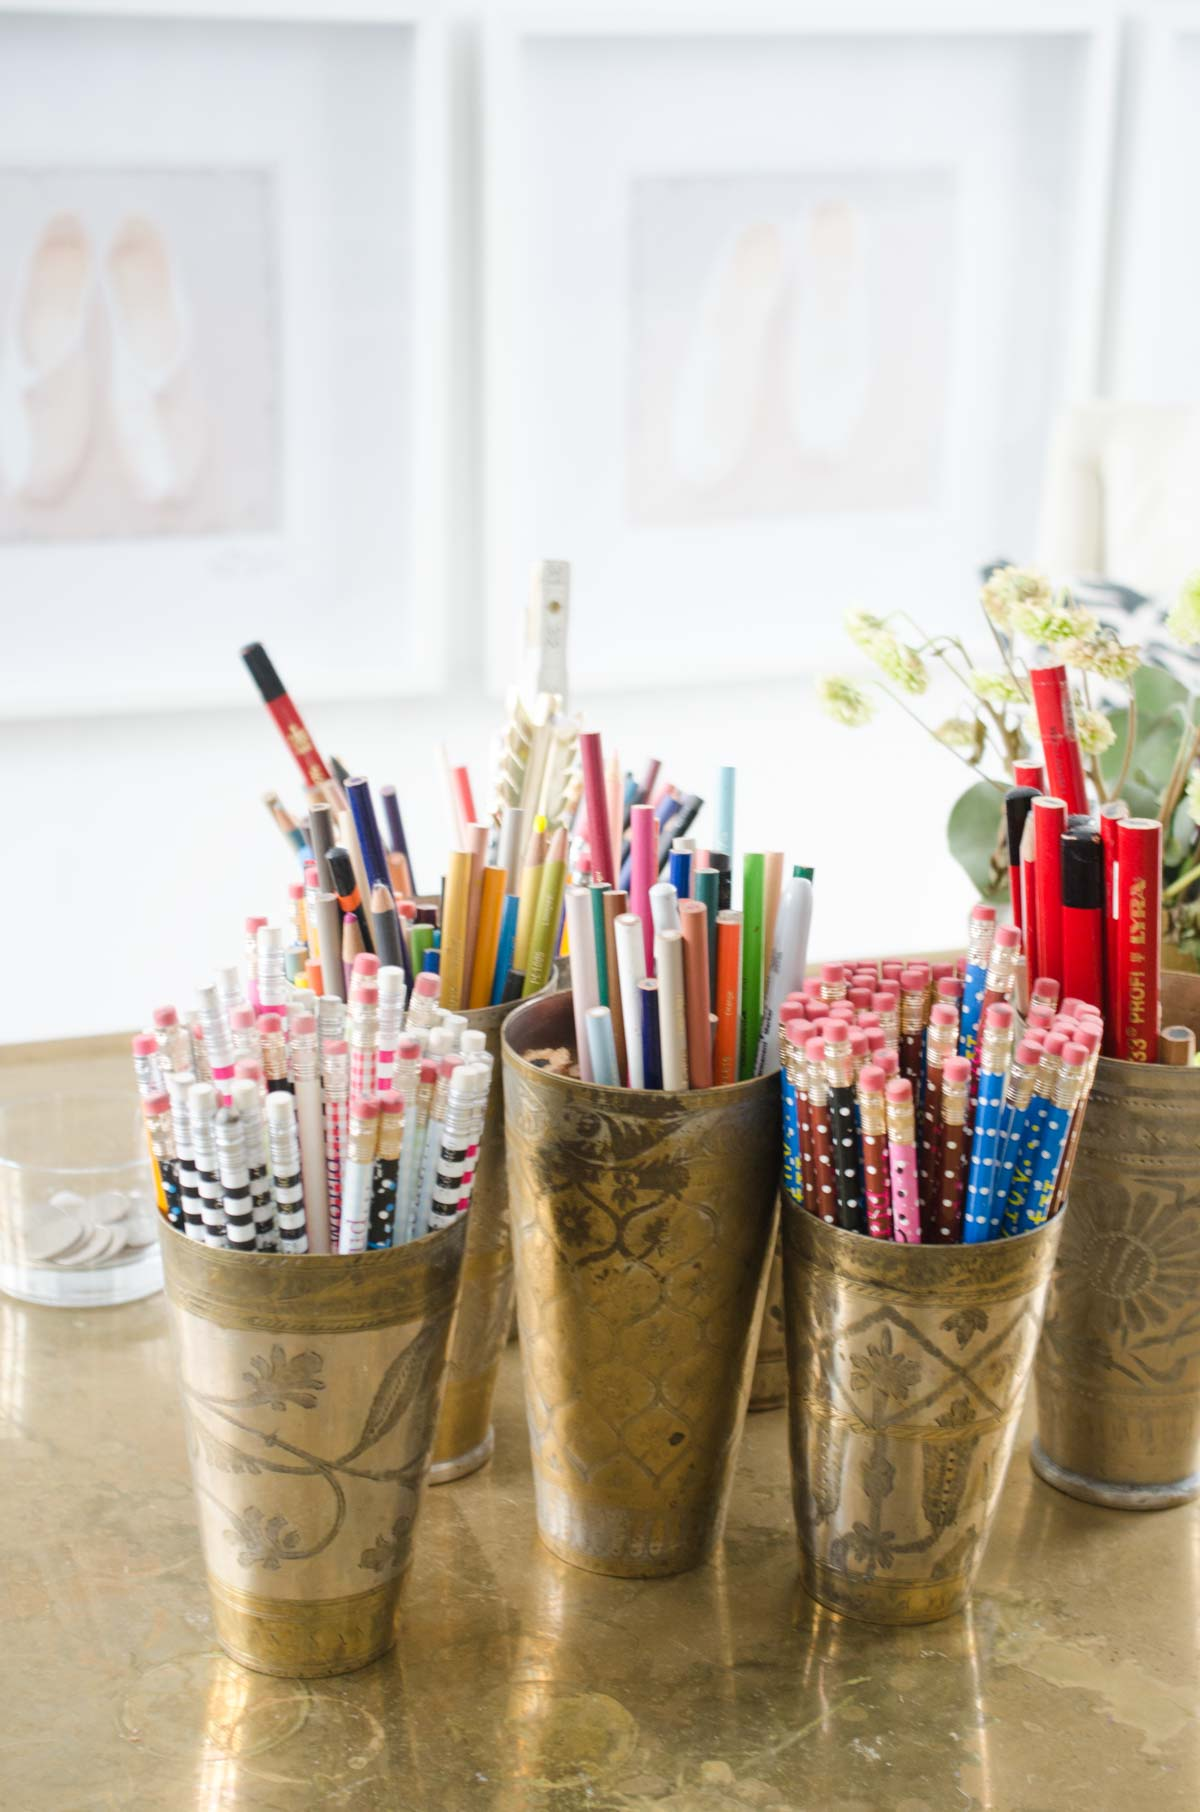 Brass desk with cups of pens and pencils on @thouswellblog